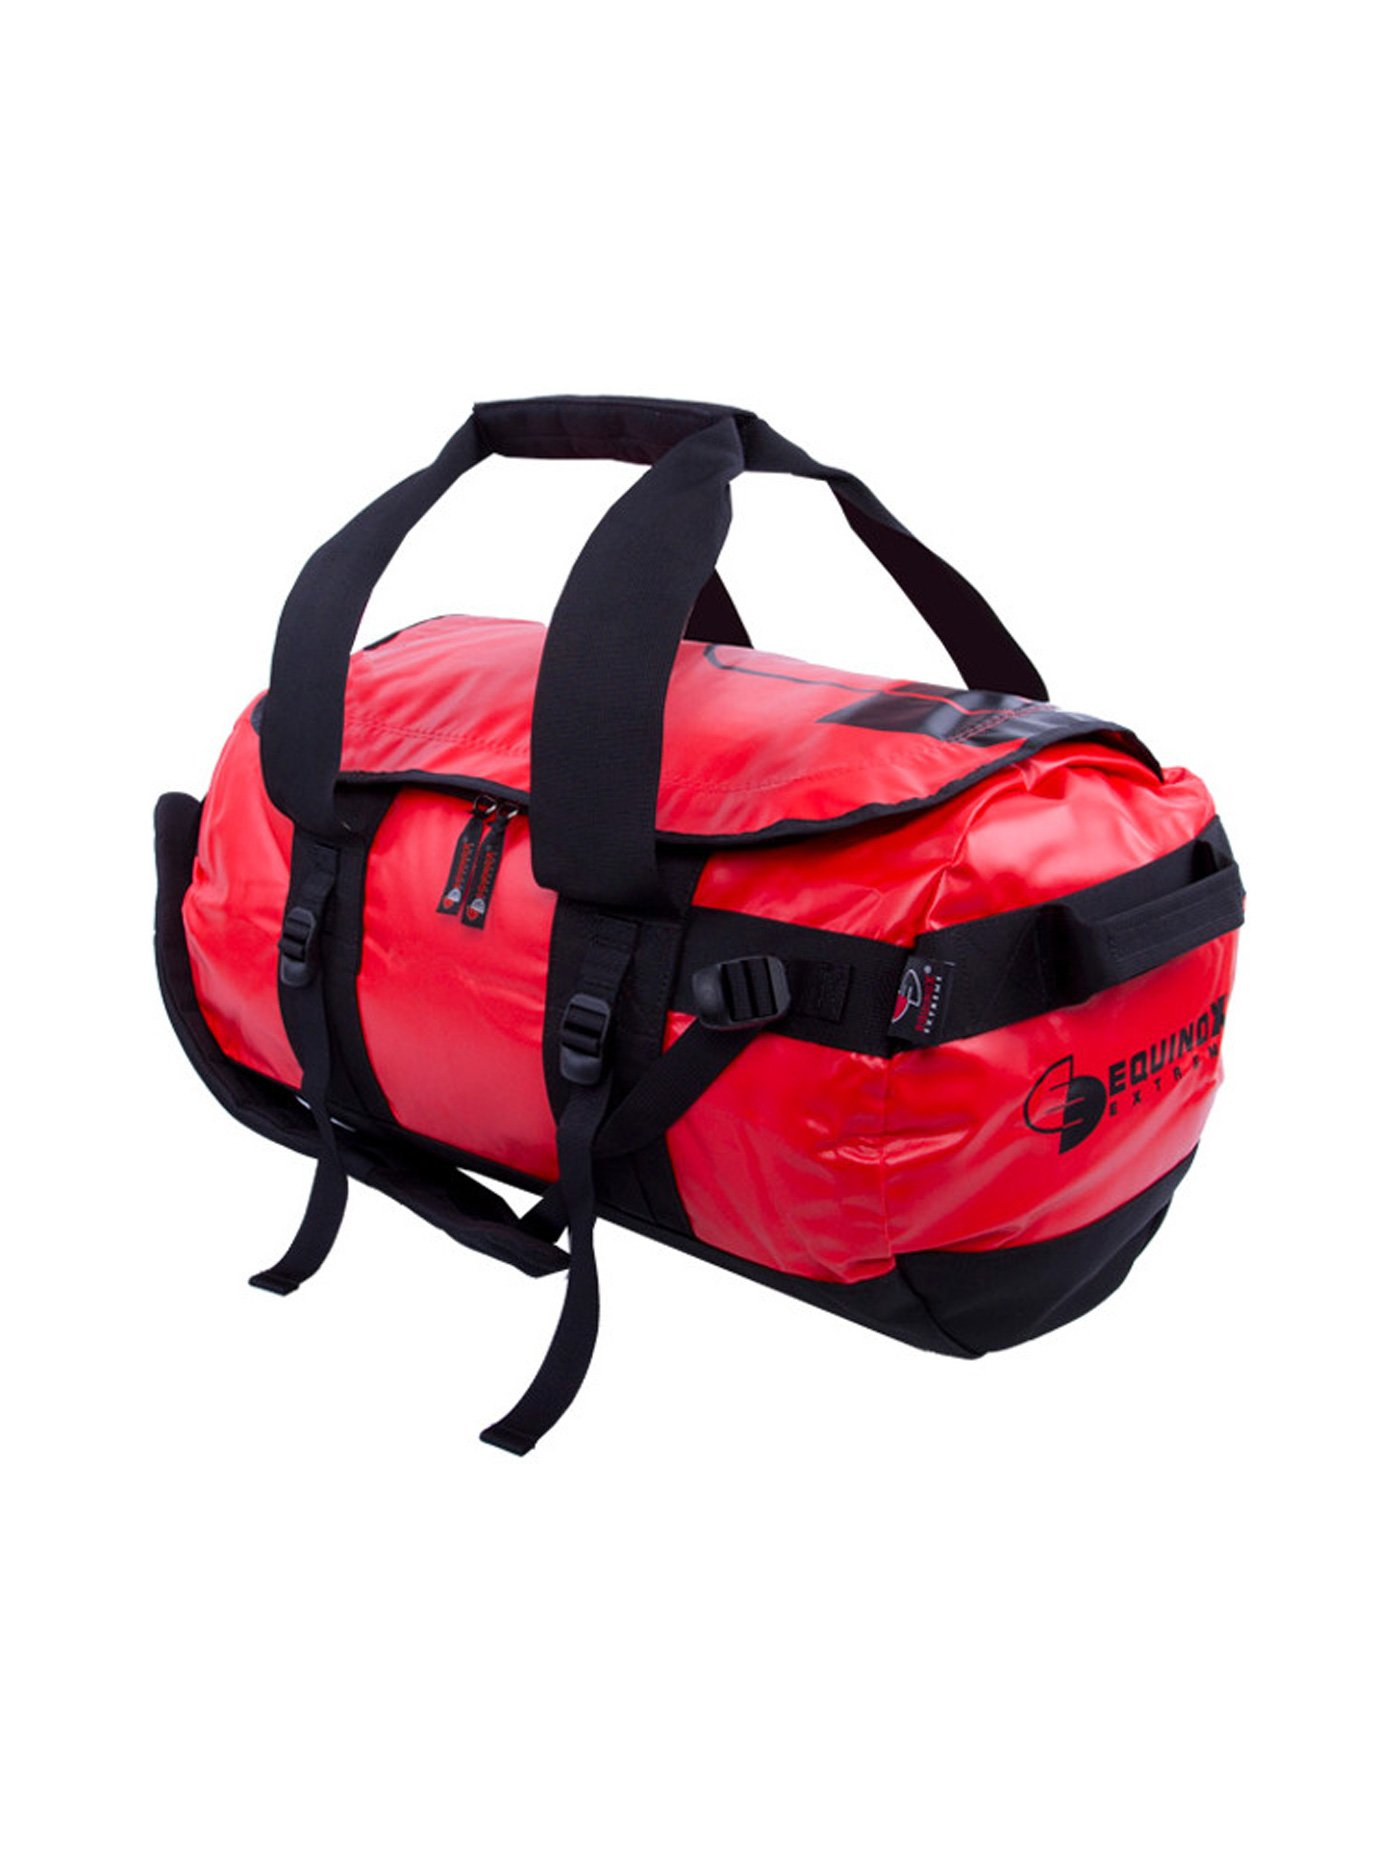 EQUINOX Extreme Duffle Waterproof Dry Bag 72 Litres, Red Color 1 pcs.